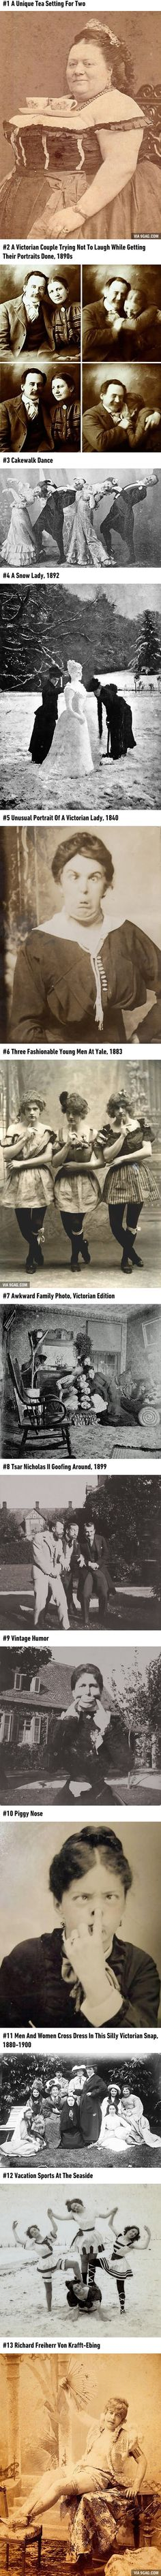 13 Rare Photos Of Victorians Proving They Weren't As Serious As You Thought